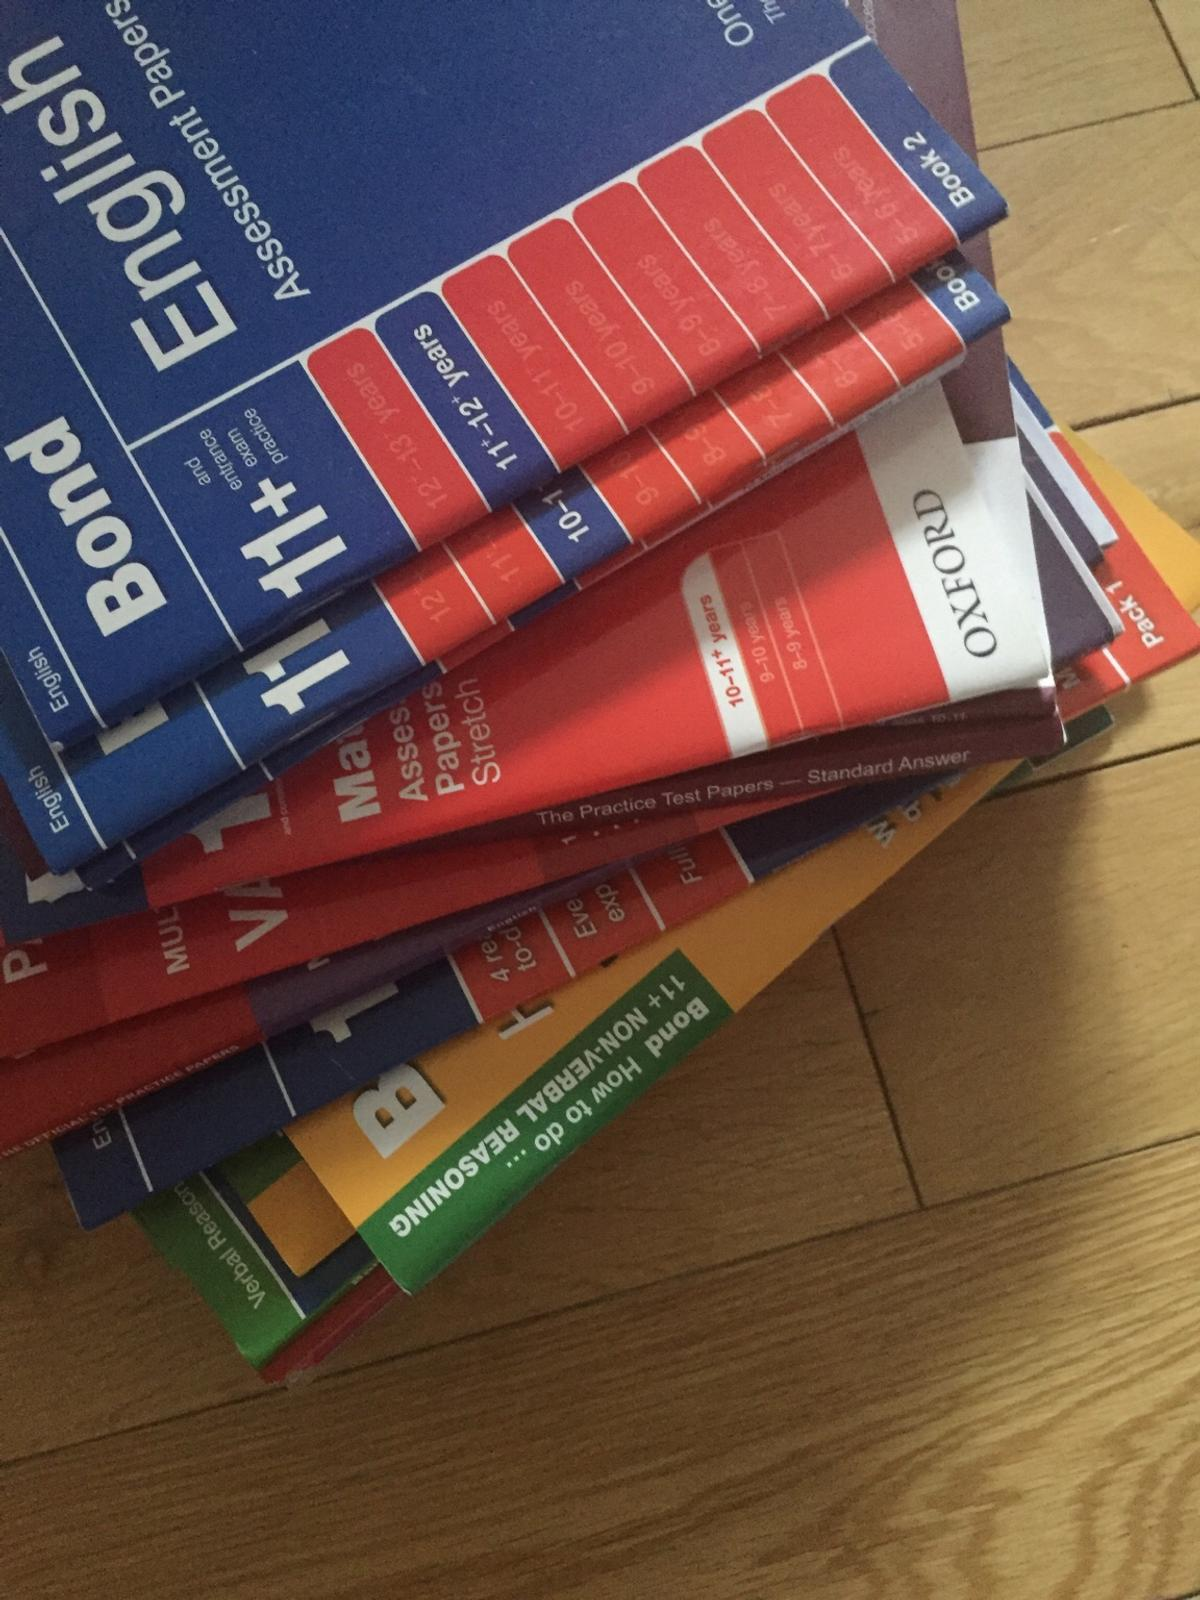 11+ books and test papers